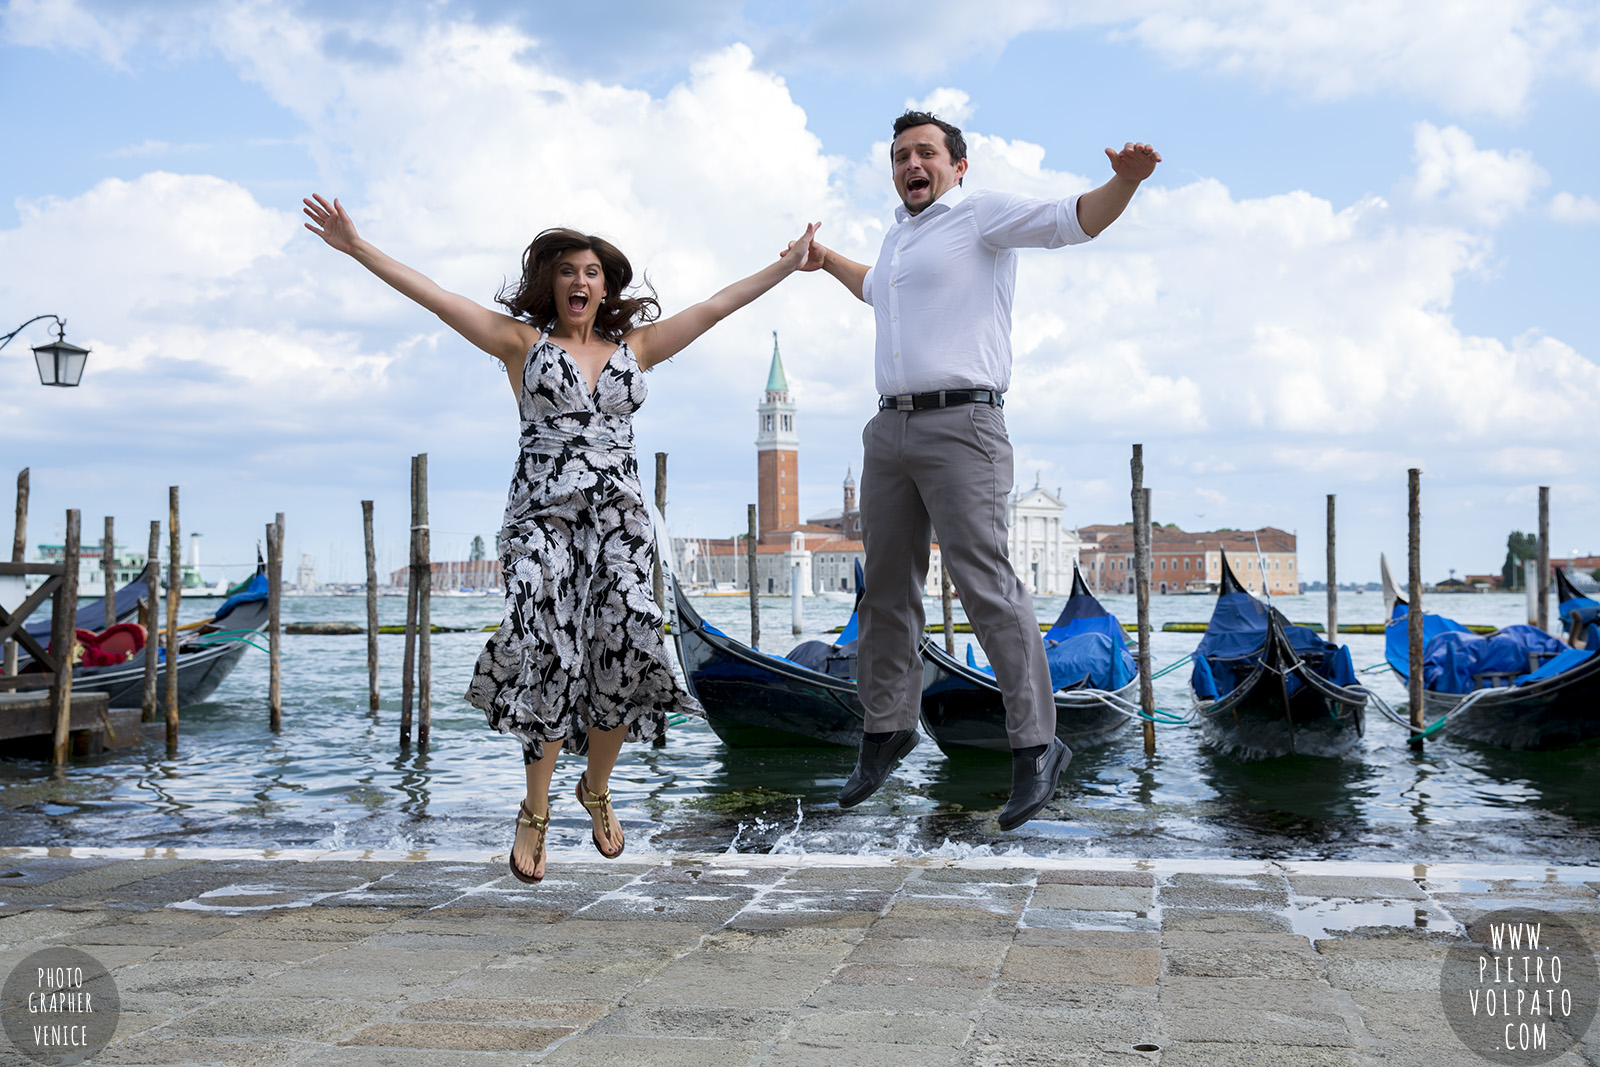 photographer in venice Italy for photo shoot of a couple on vacation for wedding anniversary